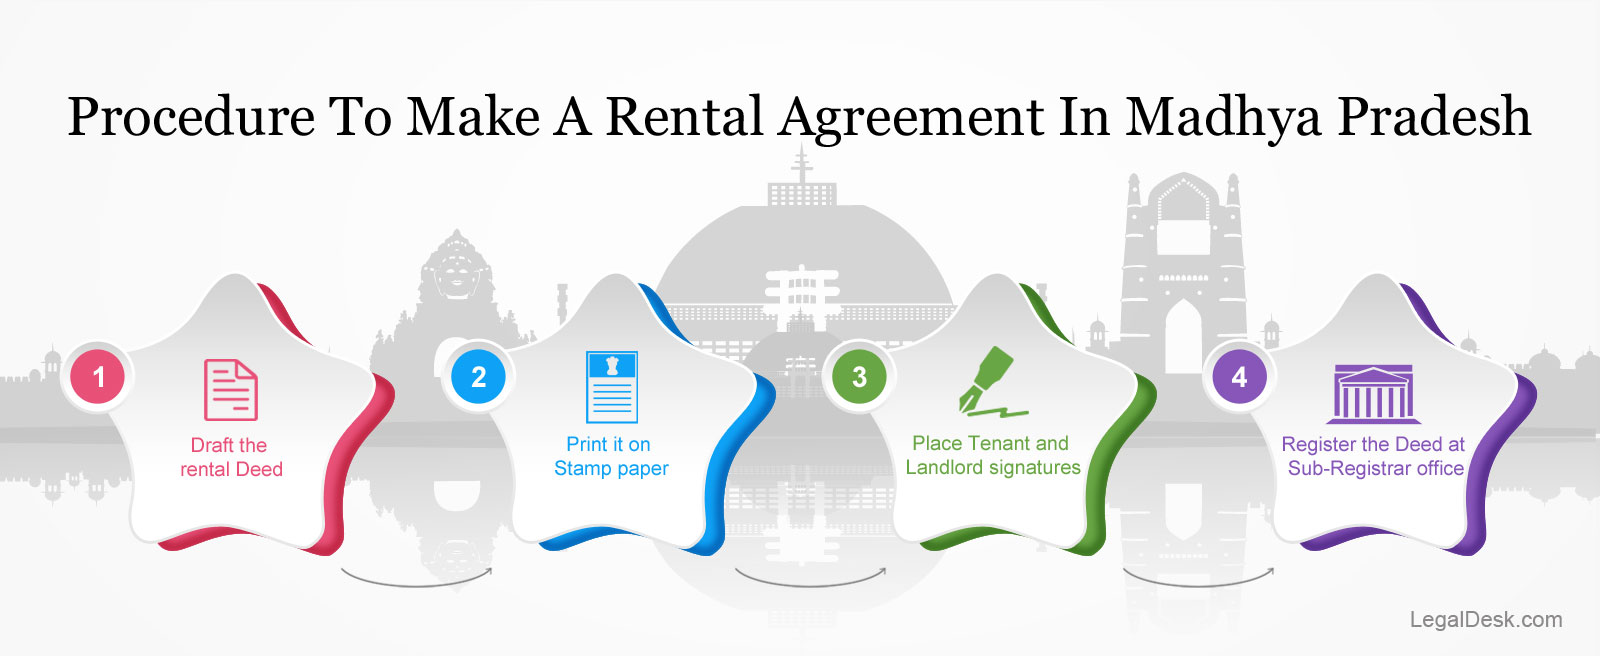 How To Make Your Rental Agreement In Bhopal Madhya Pradesh